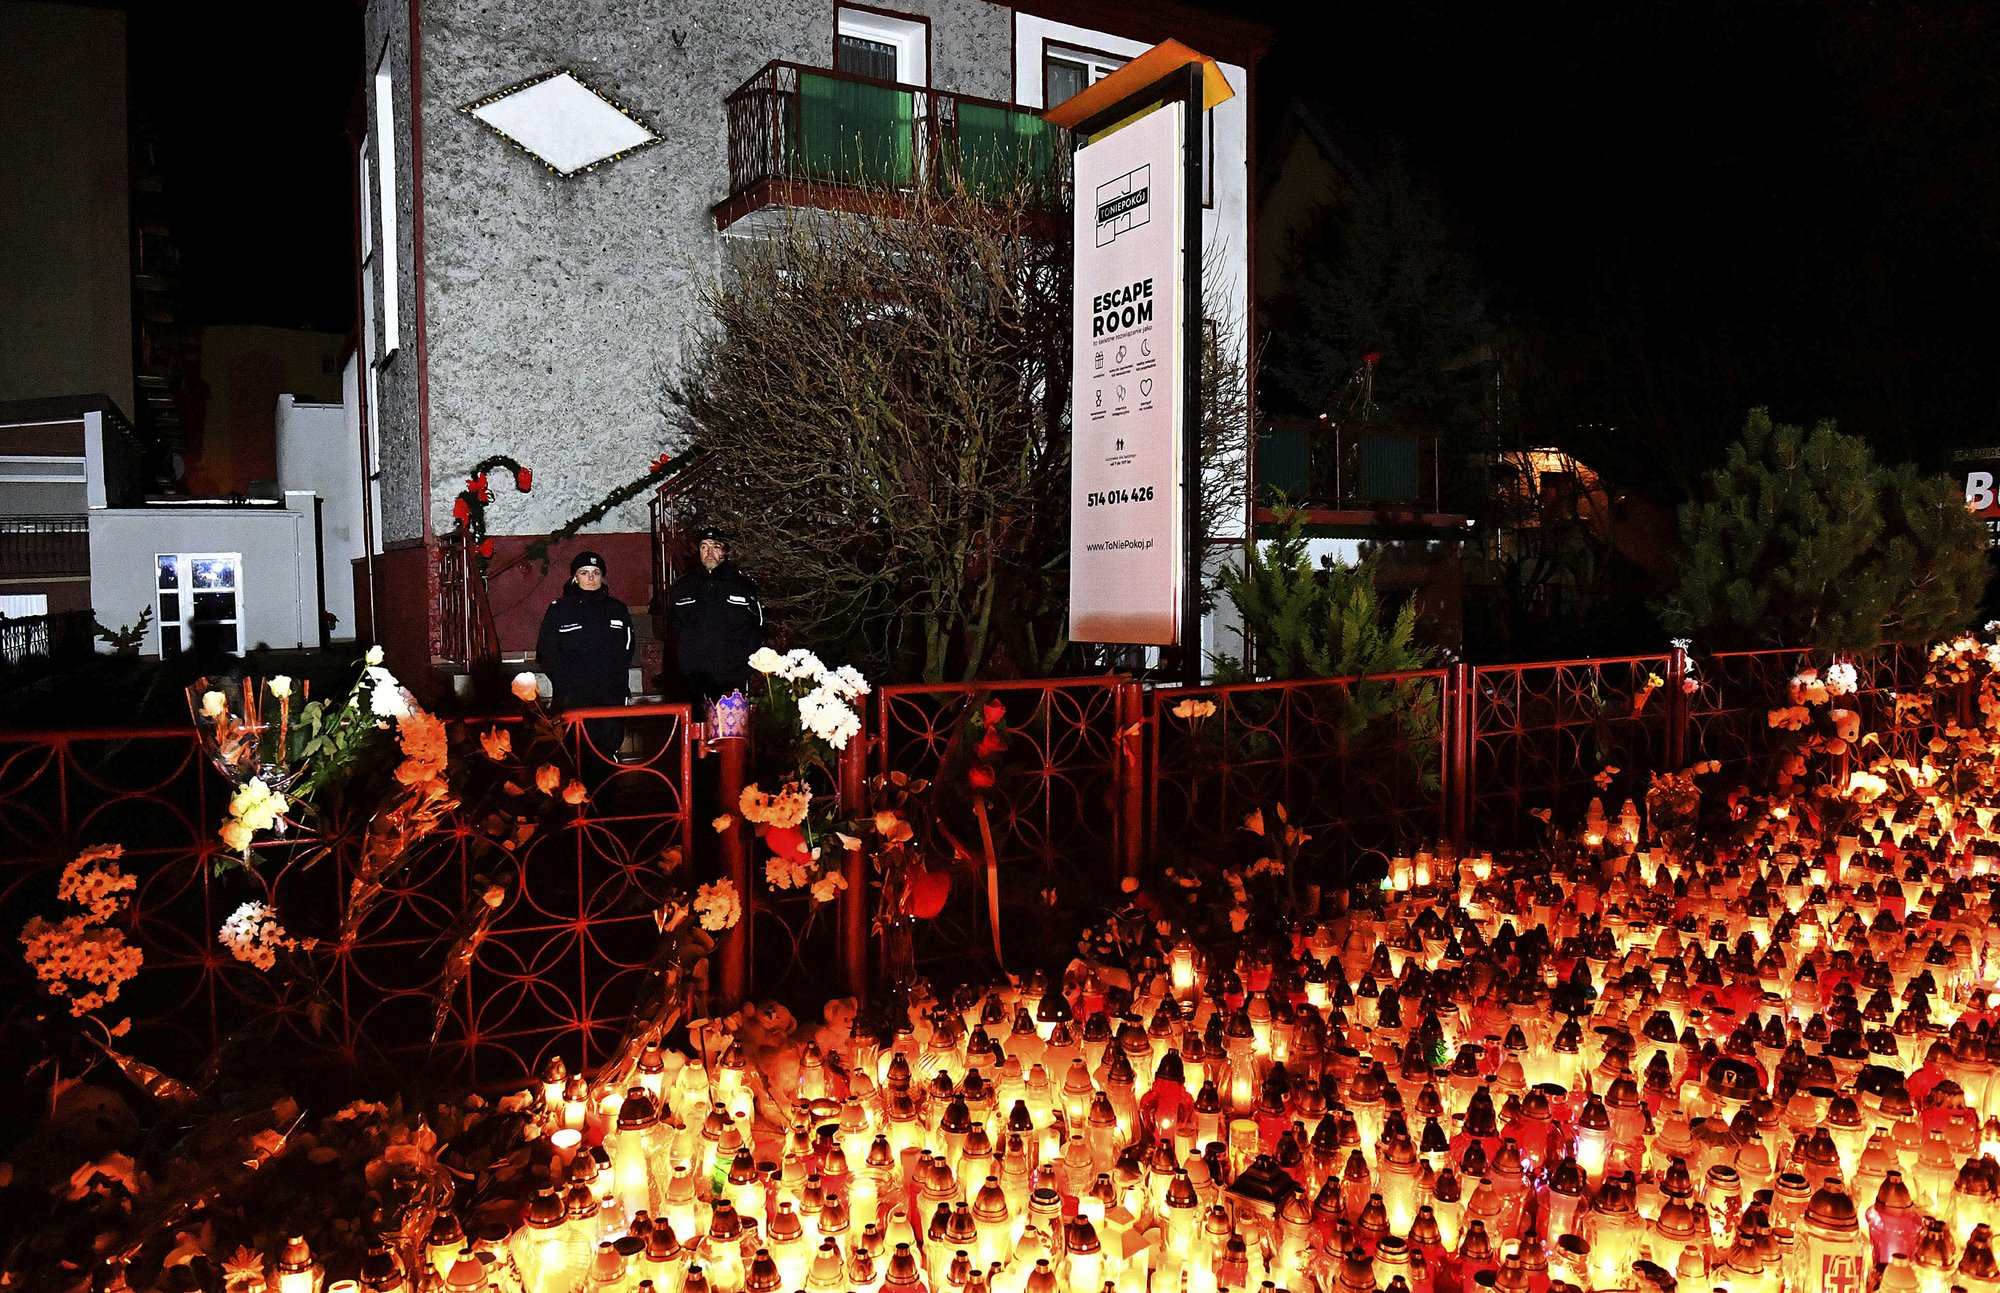 Lights, flowers and toys are left outside the escape room entertainment site where five teenage girls died in a fire last week, in Koszalin, northern Poland, on Sunday, Jan. 6, 2019. Photo: AP